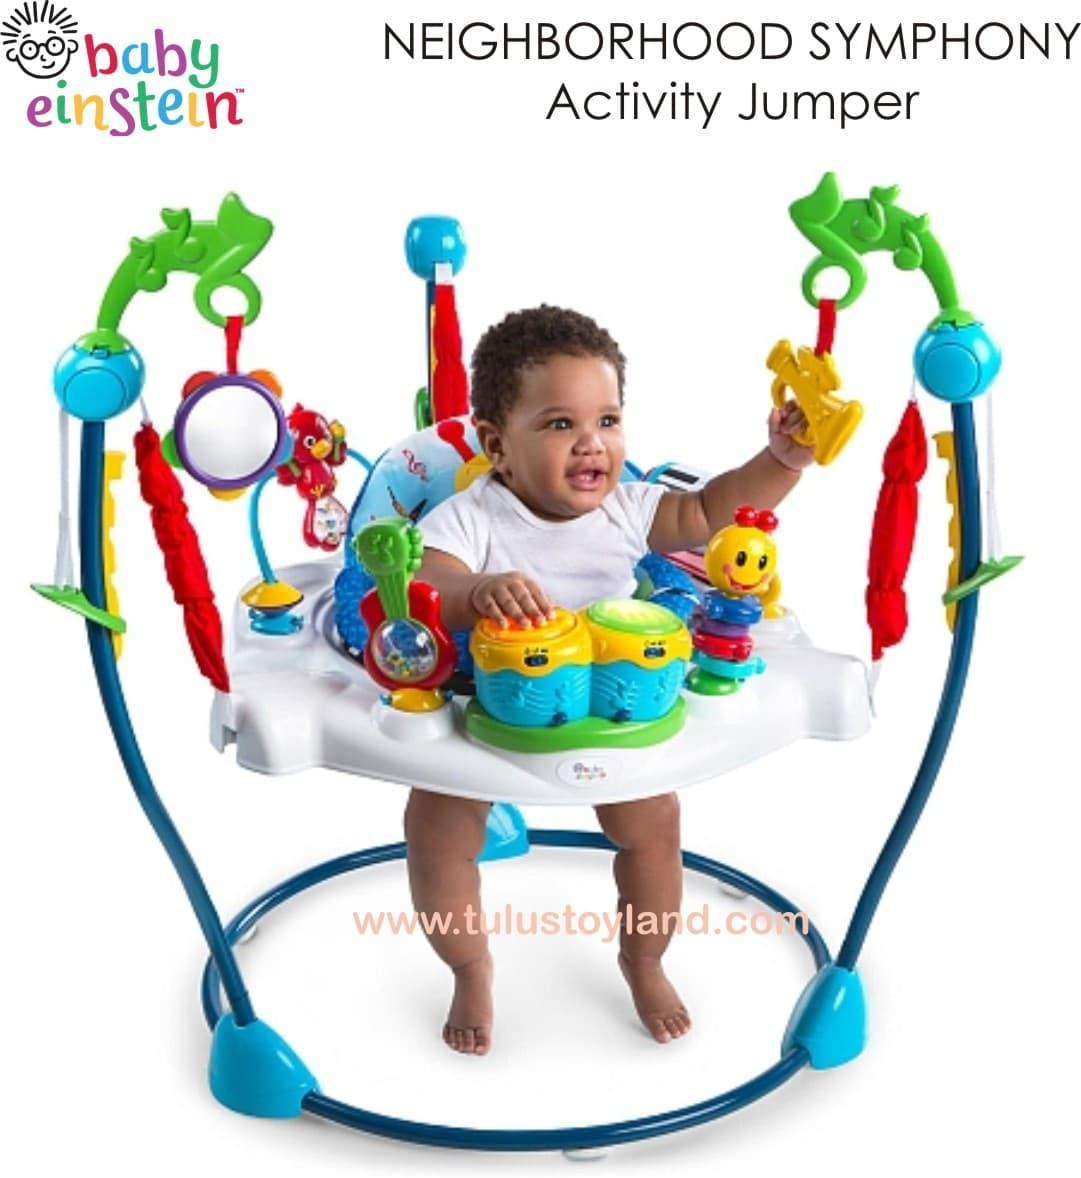 Baby Einstein Jumperoo Neighborhood Symphony Activity Jumper Jumpero